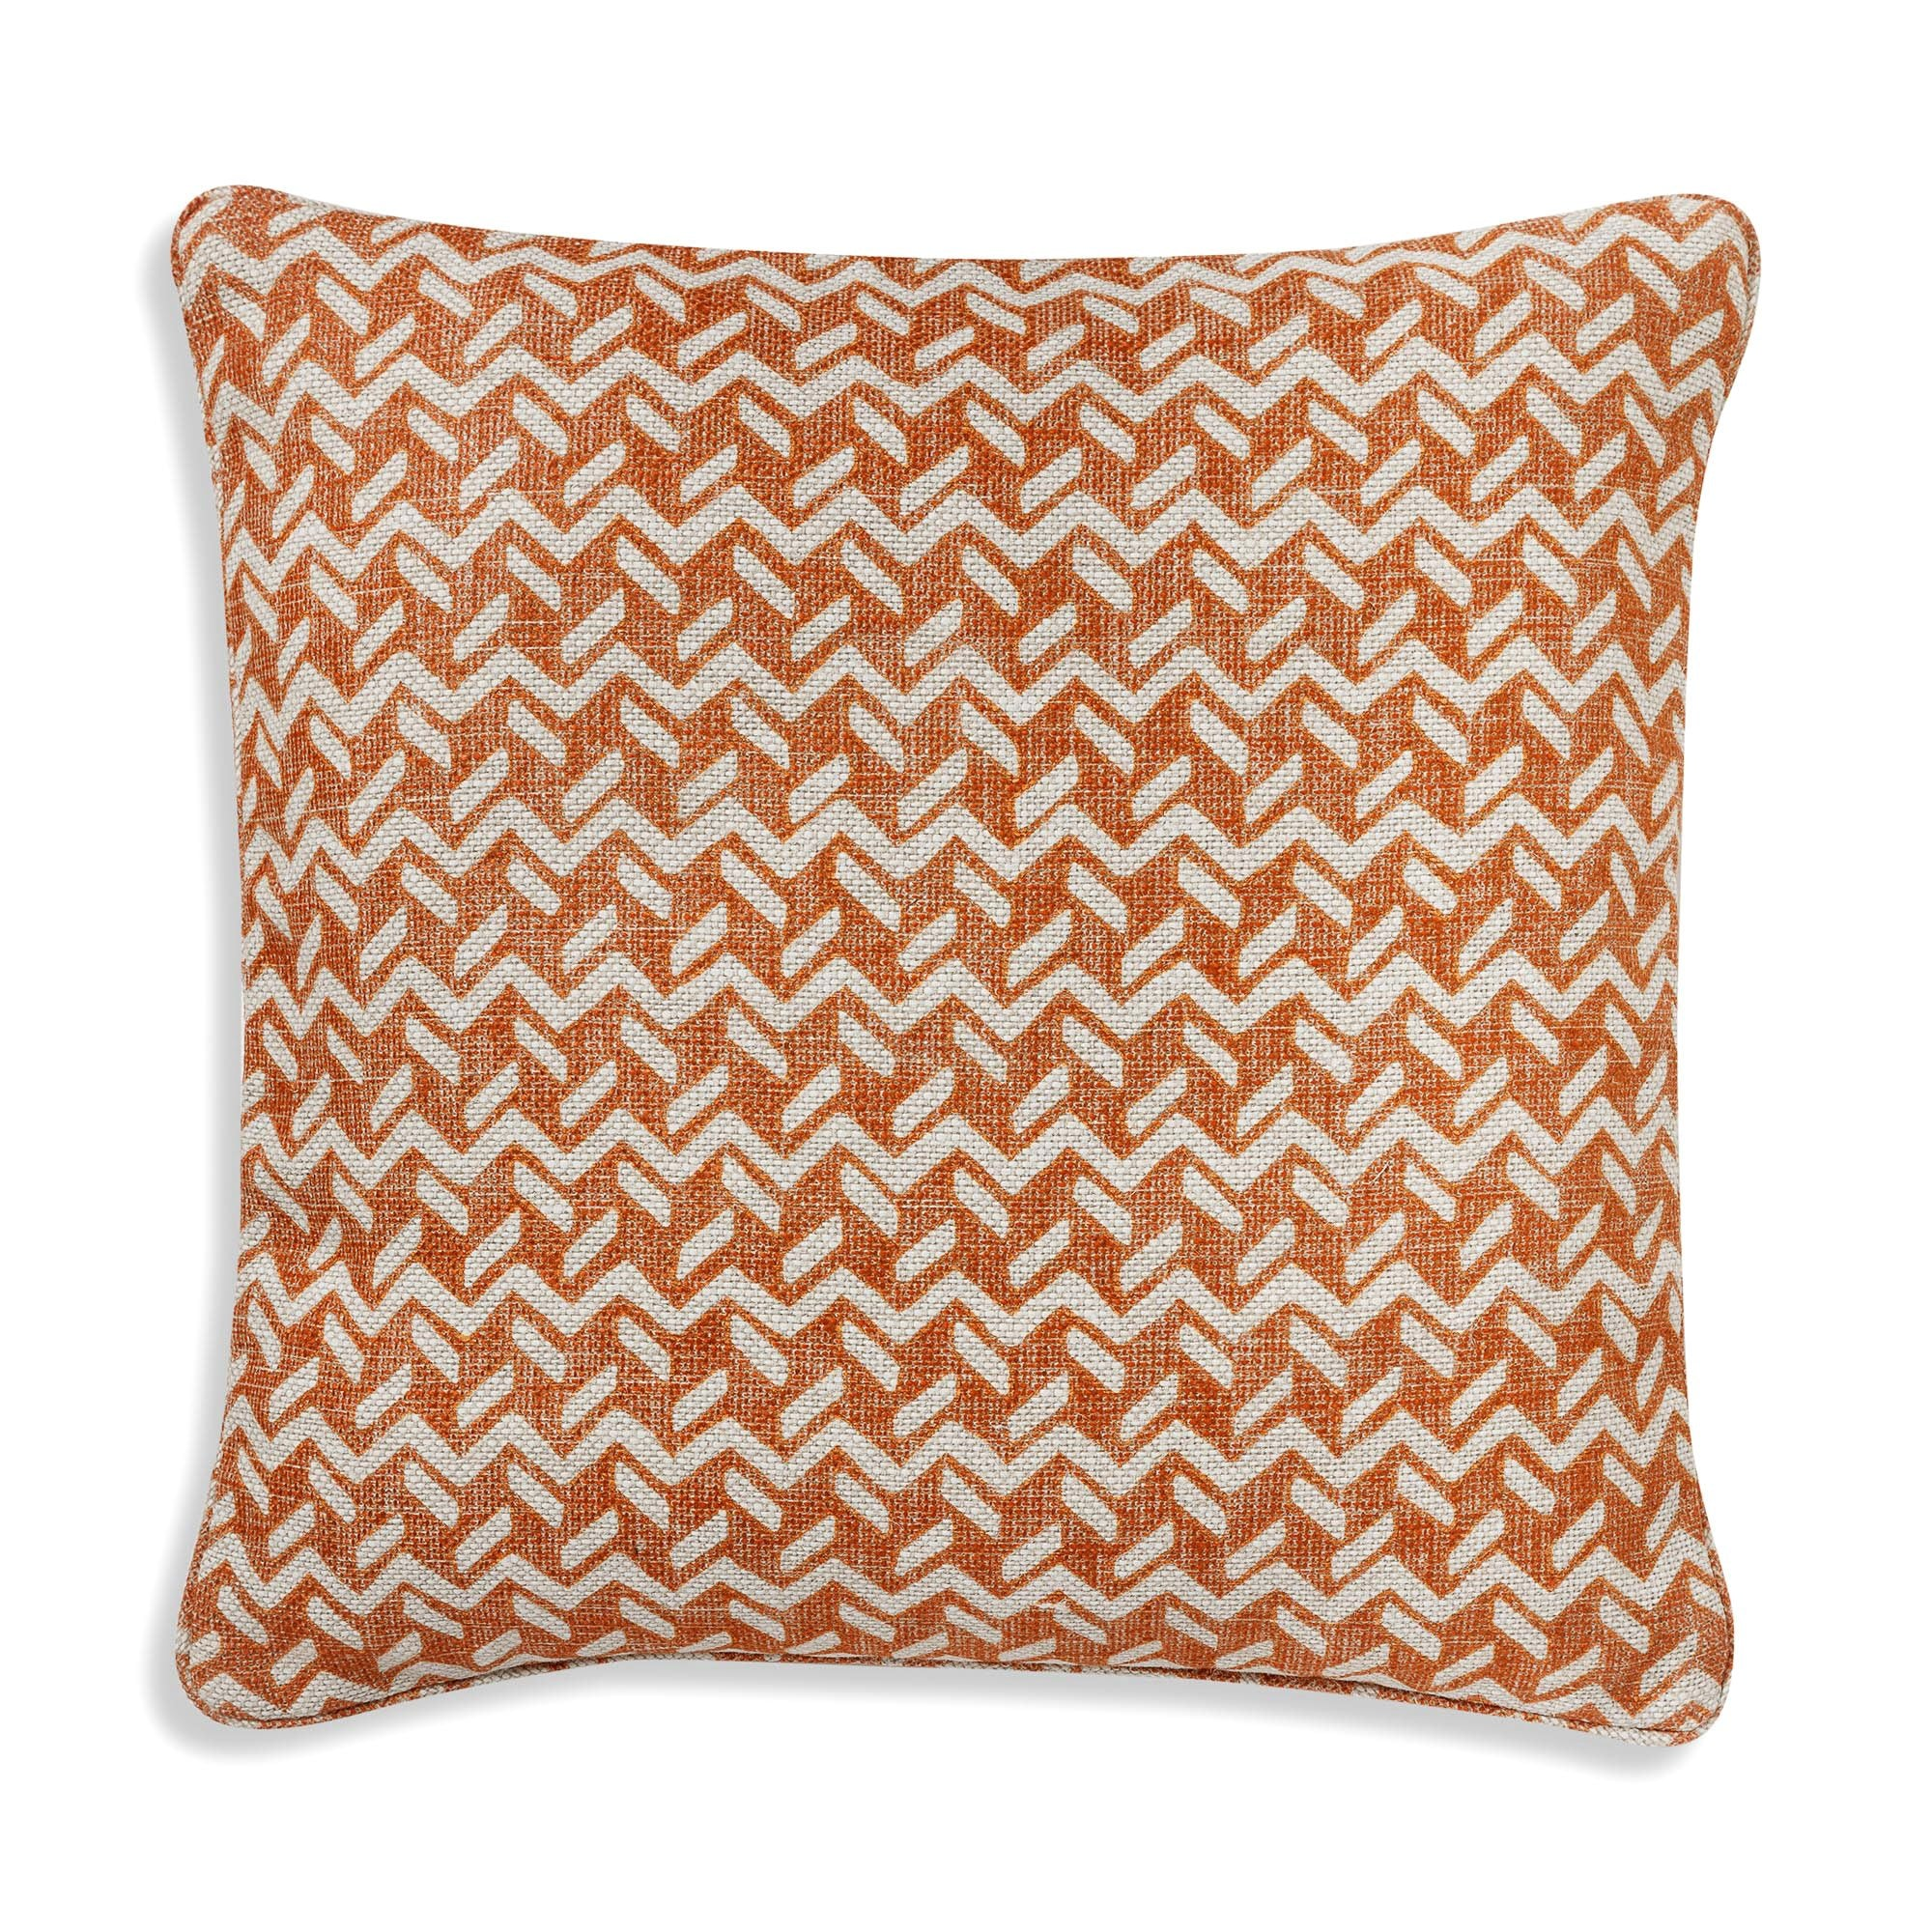 Fermoie Cushion in Orange Chiltern